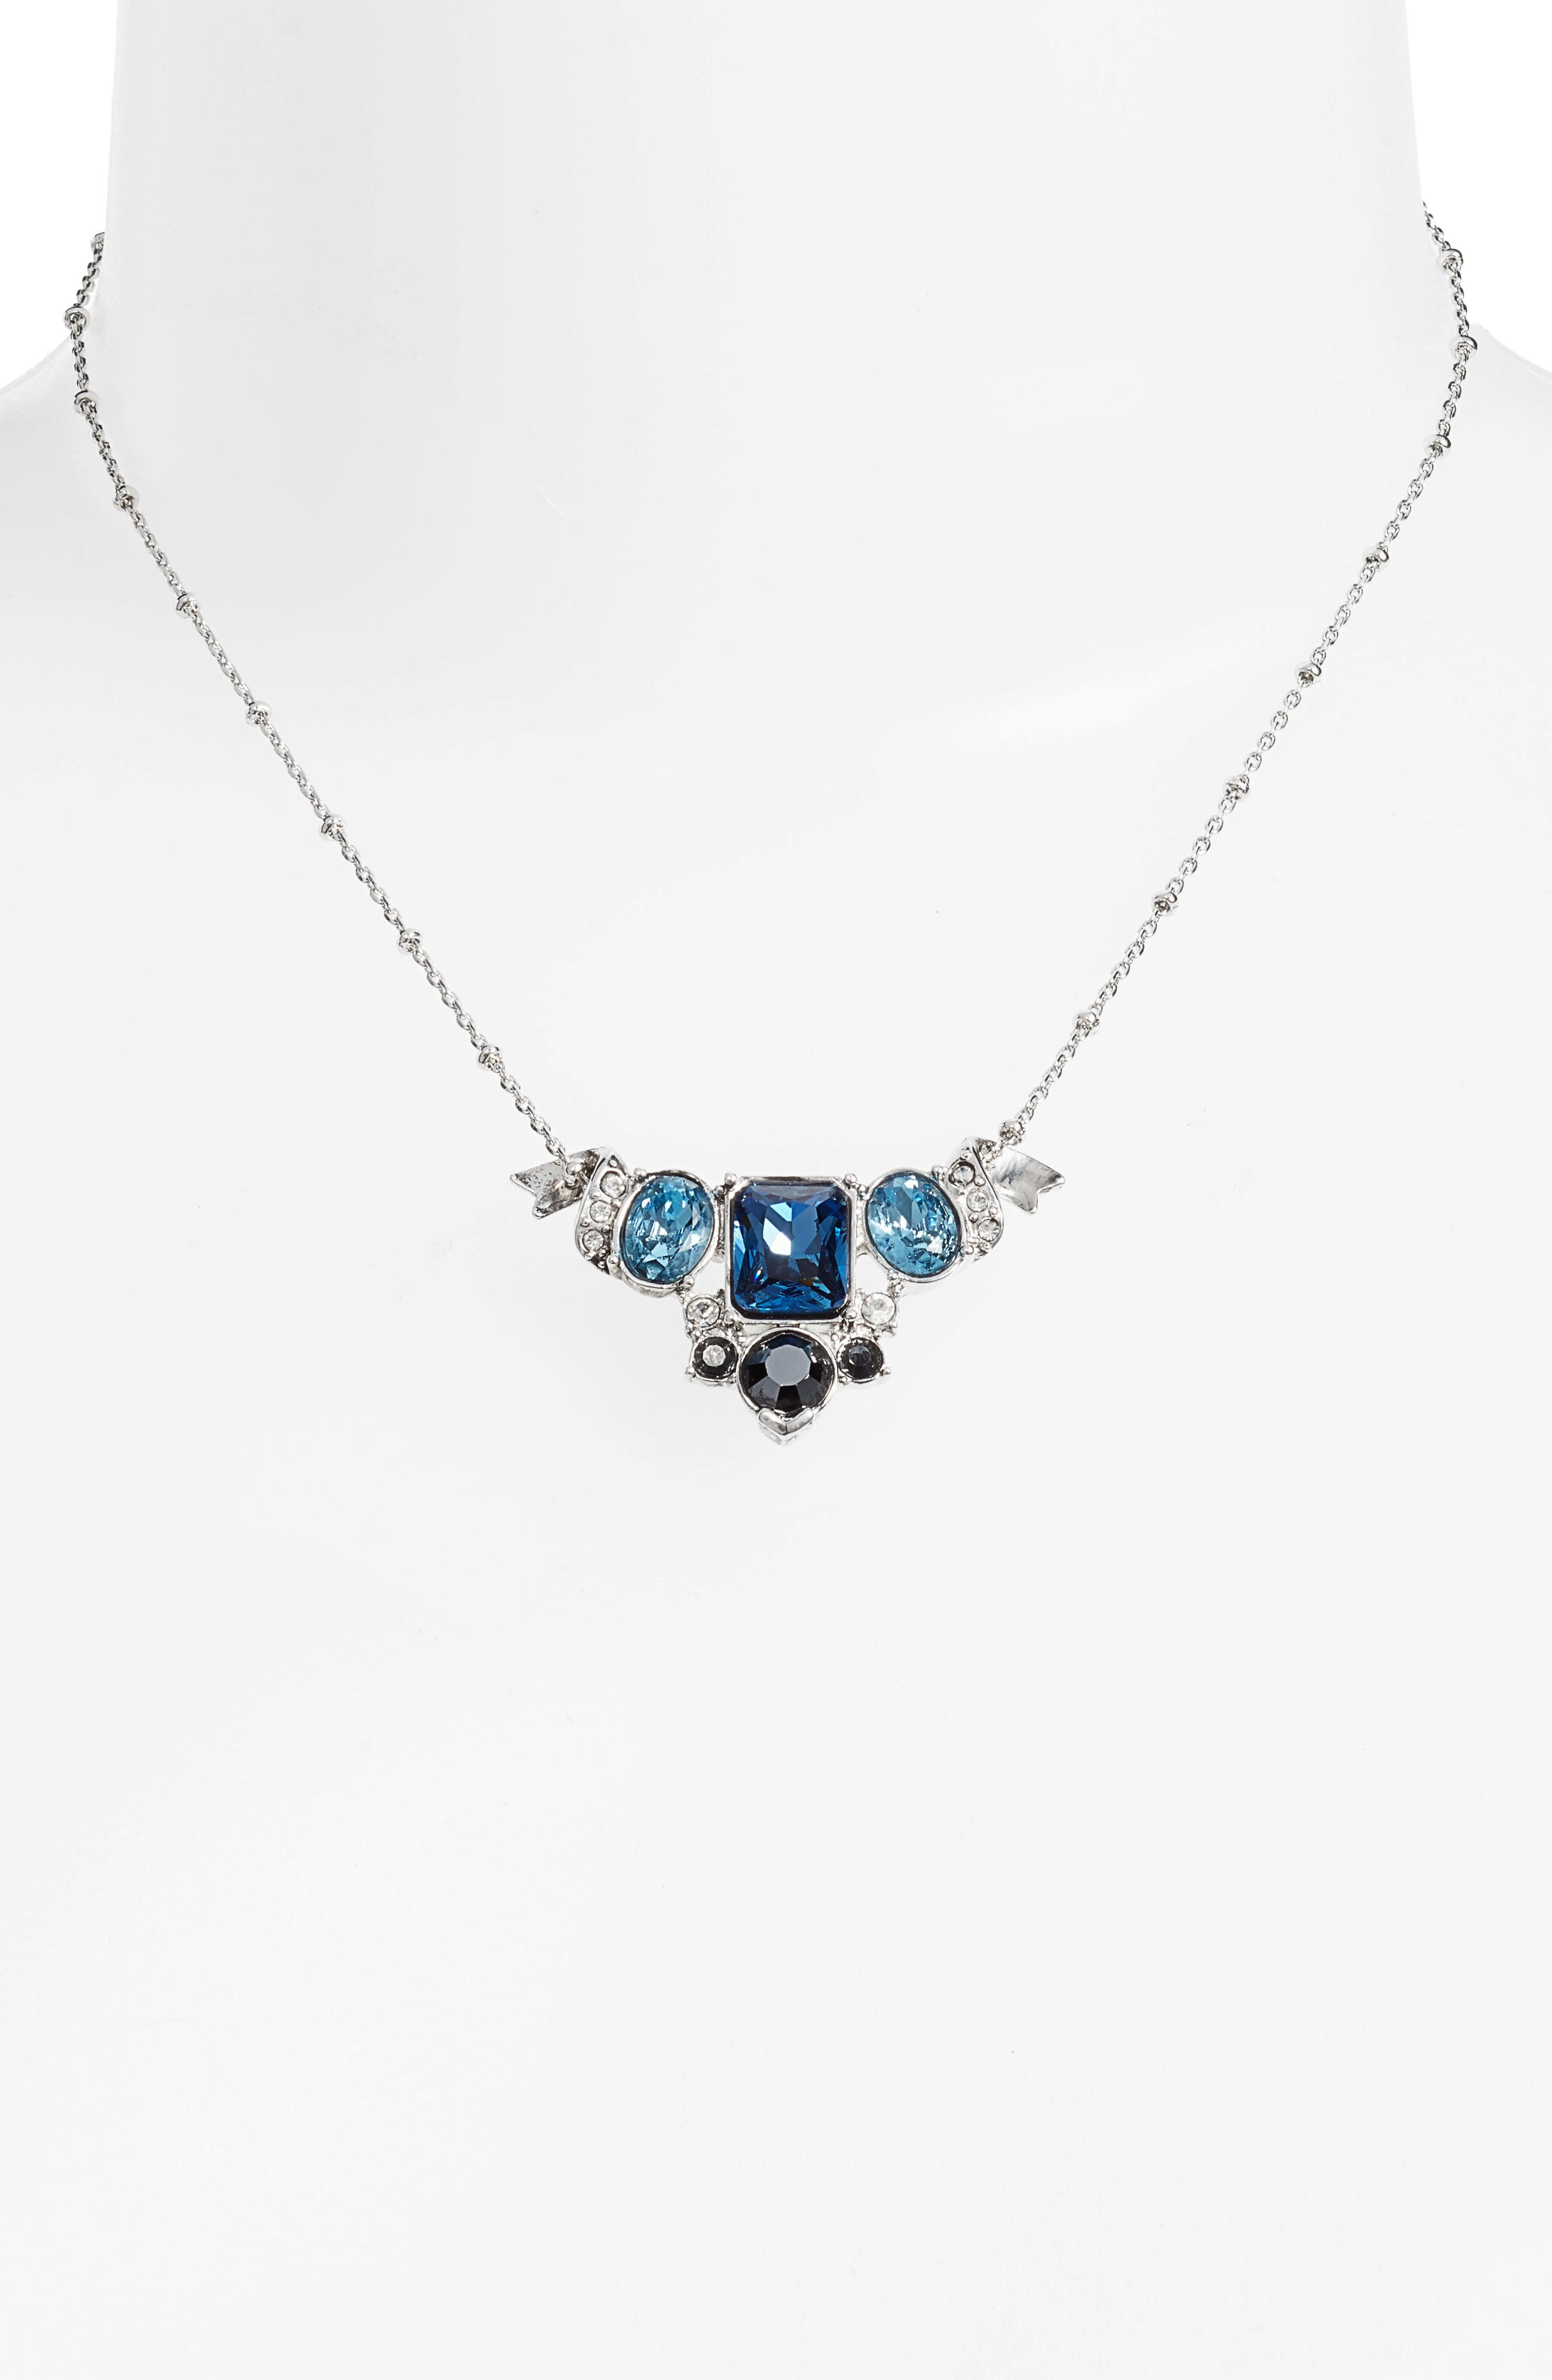 Pendant Necklace,                             Alternate thumbnail 2, color,                             Silver/ Crystal/ Blue Multi